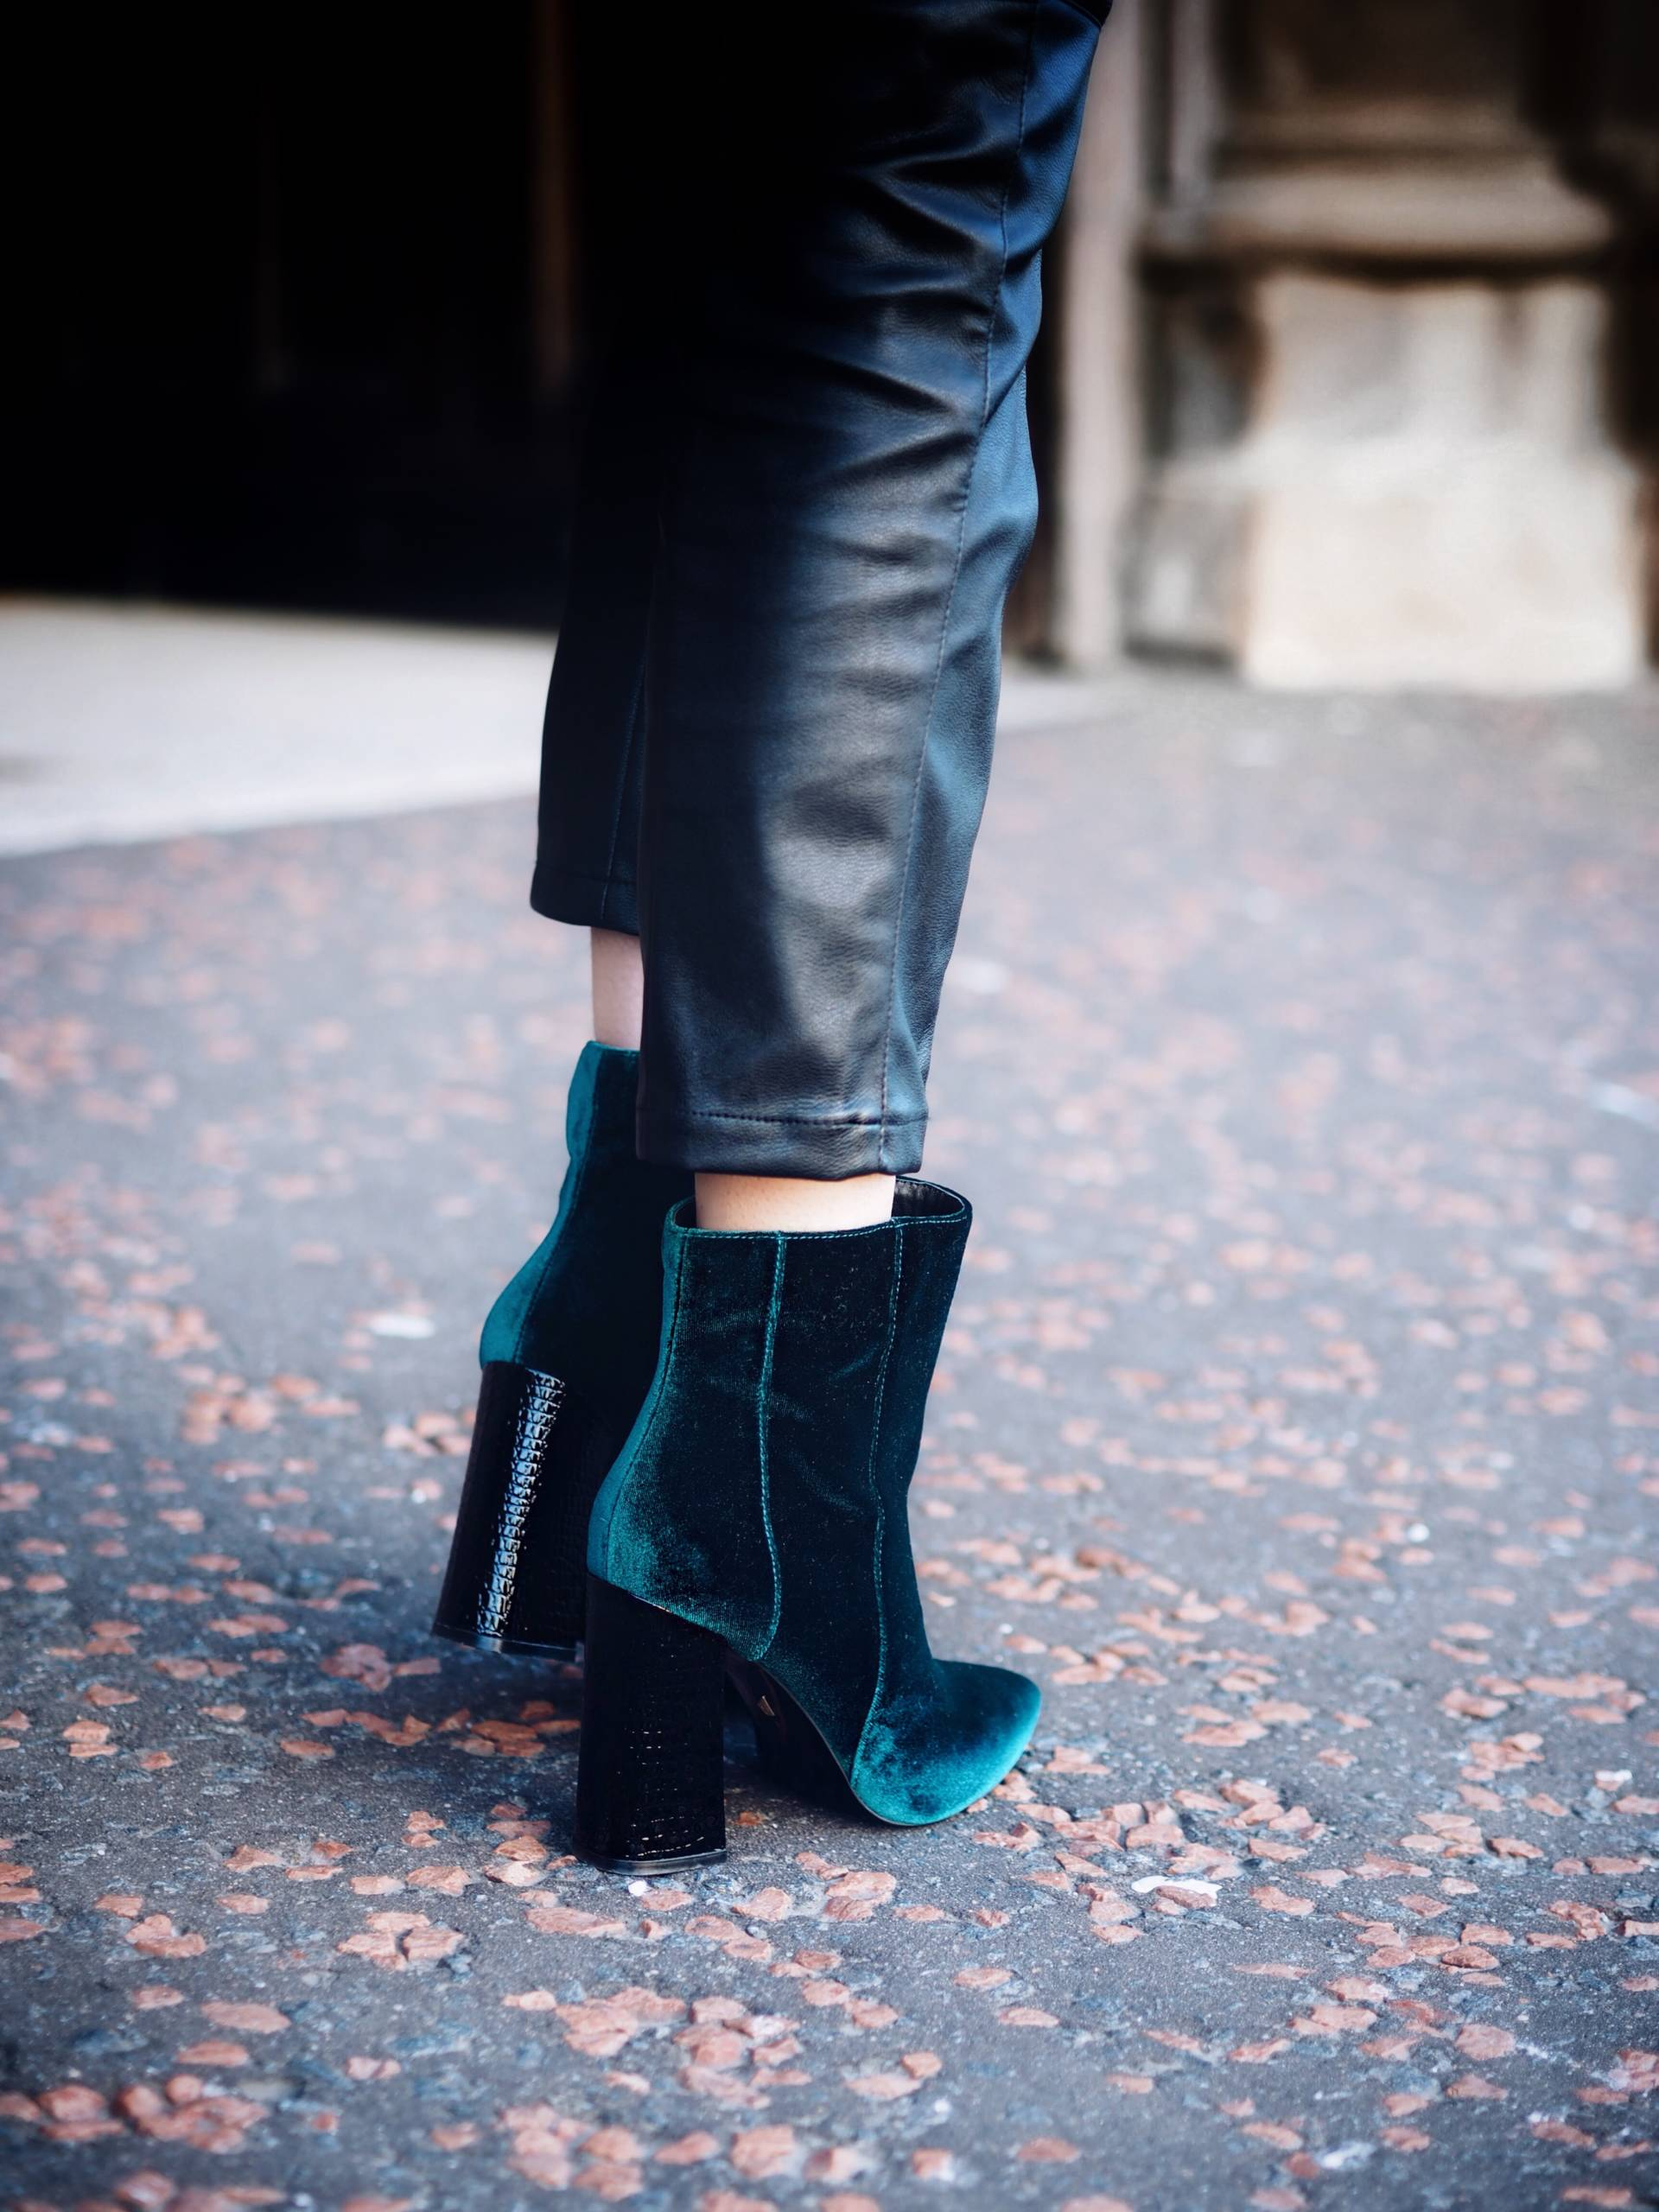 LAFOTKA-SCOTTISH-STREET-STYLE-BLOGGER-SHOES-OF-PREY